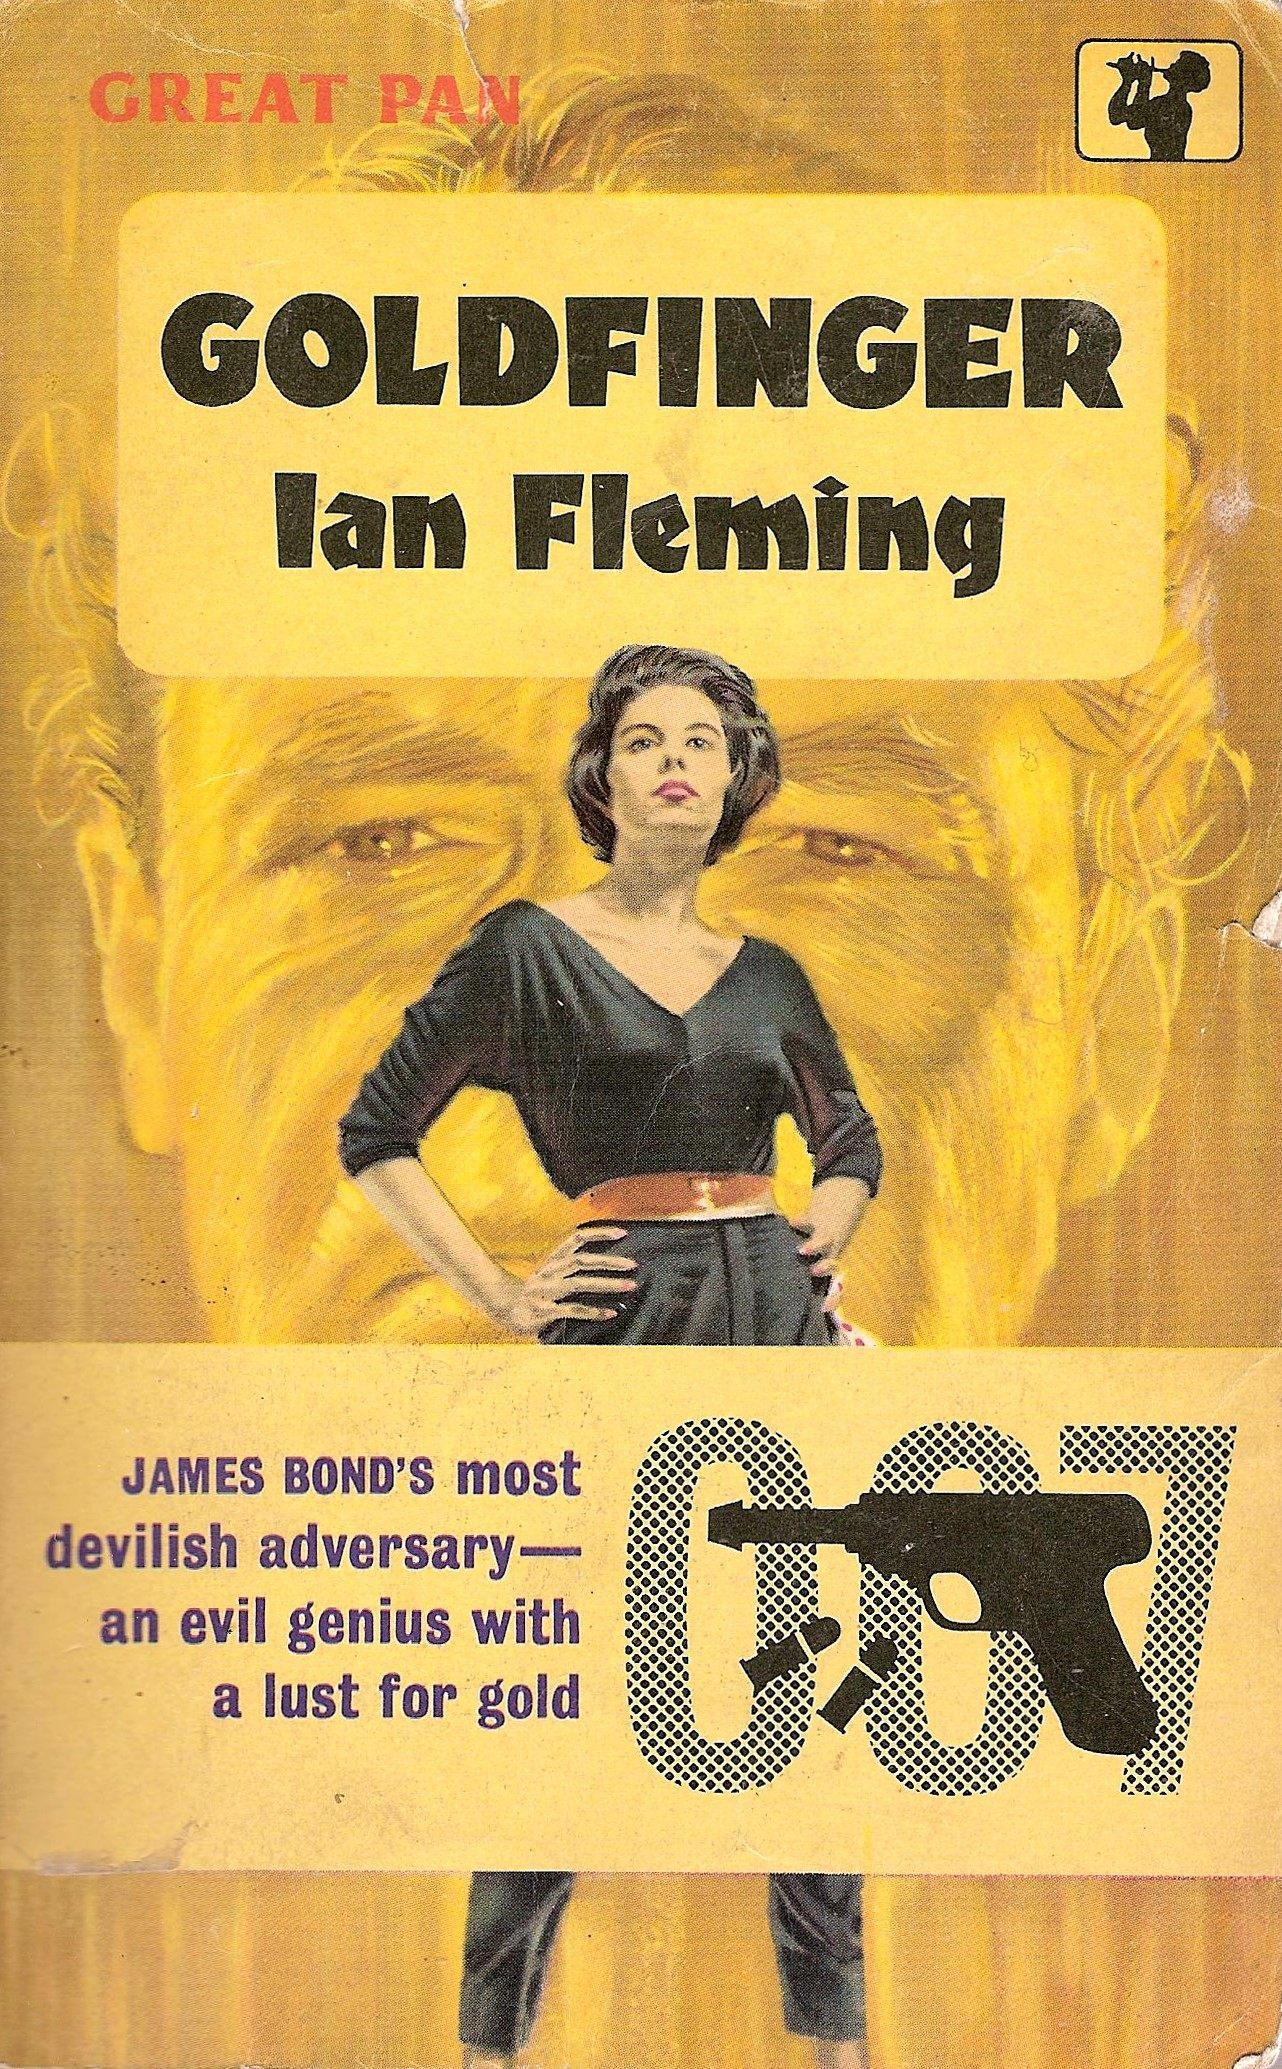 Pan edition of Goldfinger published in 1961